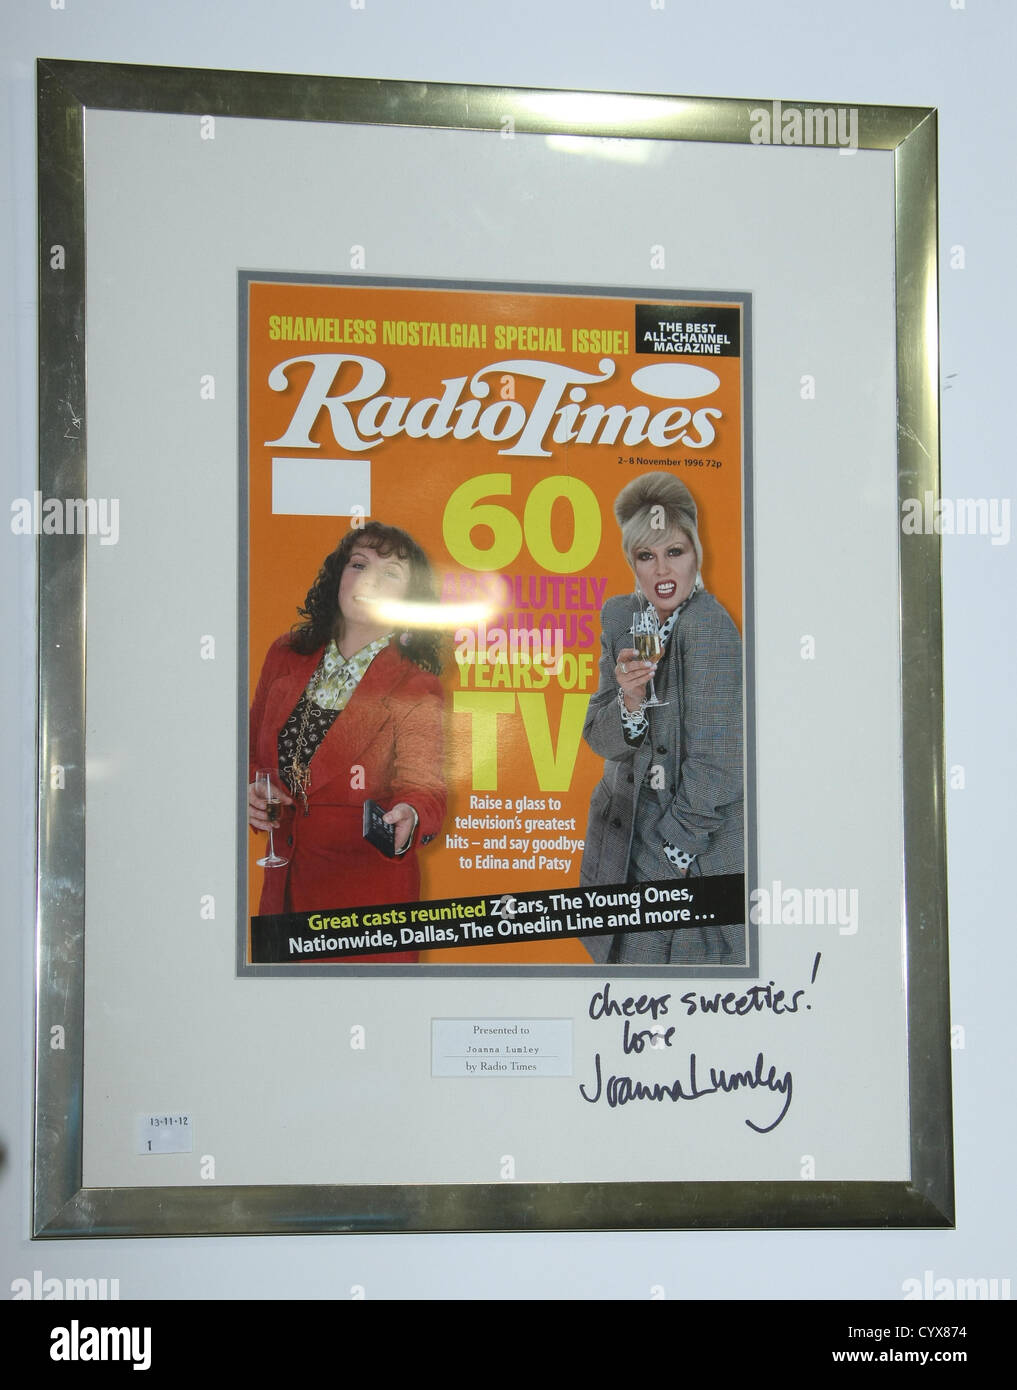 JOANNA LUMLEY SIGNED RADIO TIMES MAGAZINE THE ABSOLUTELY FABULOUS JOANNA LUMLEY AUCTION LONDON ENGLAND UK 12 November - Stock Image